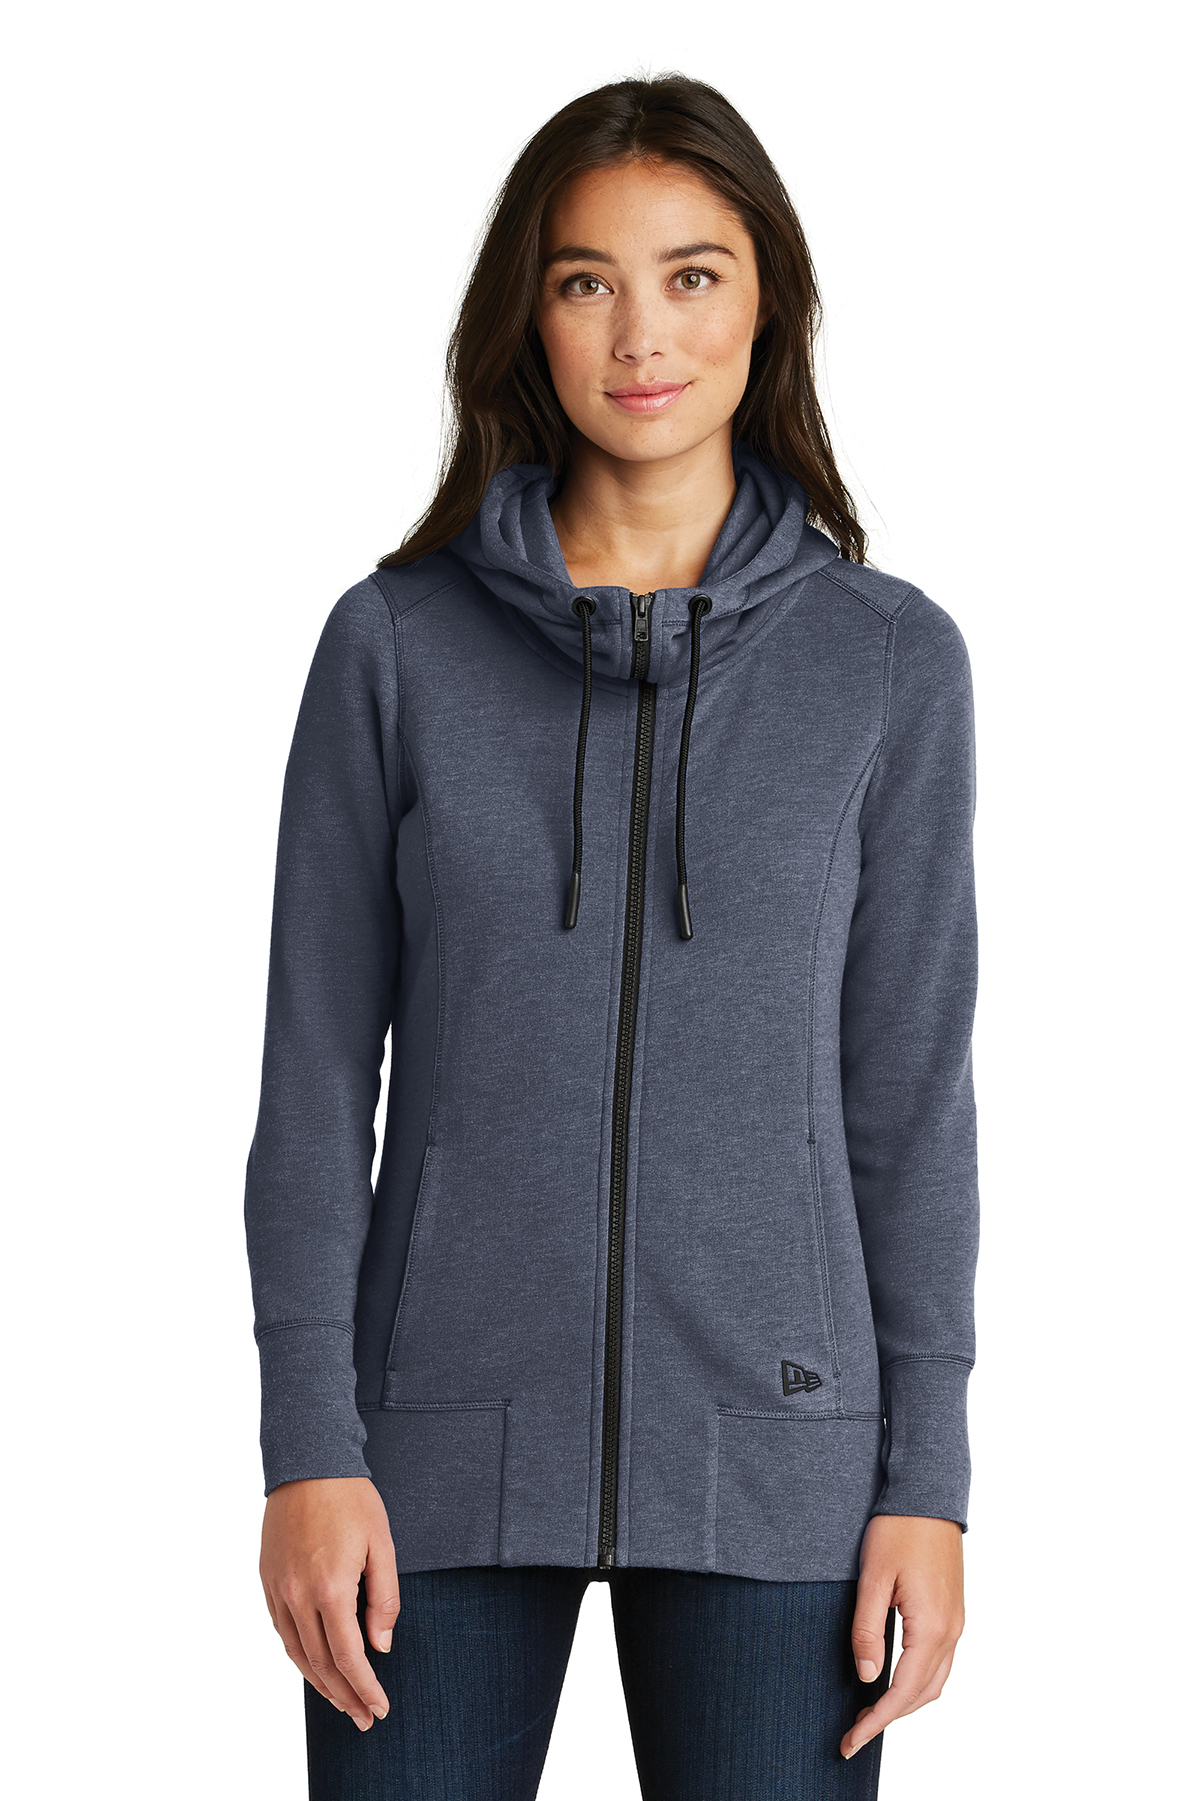 New Era LNEA511 - Ladies Tri-Blend Fleece Full Zip Hoodie